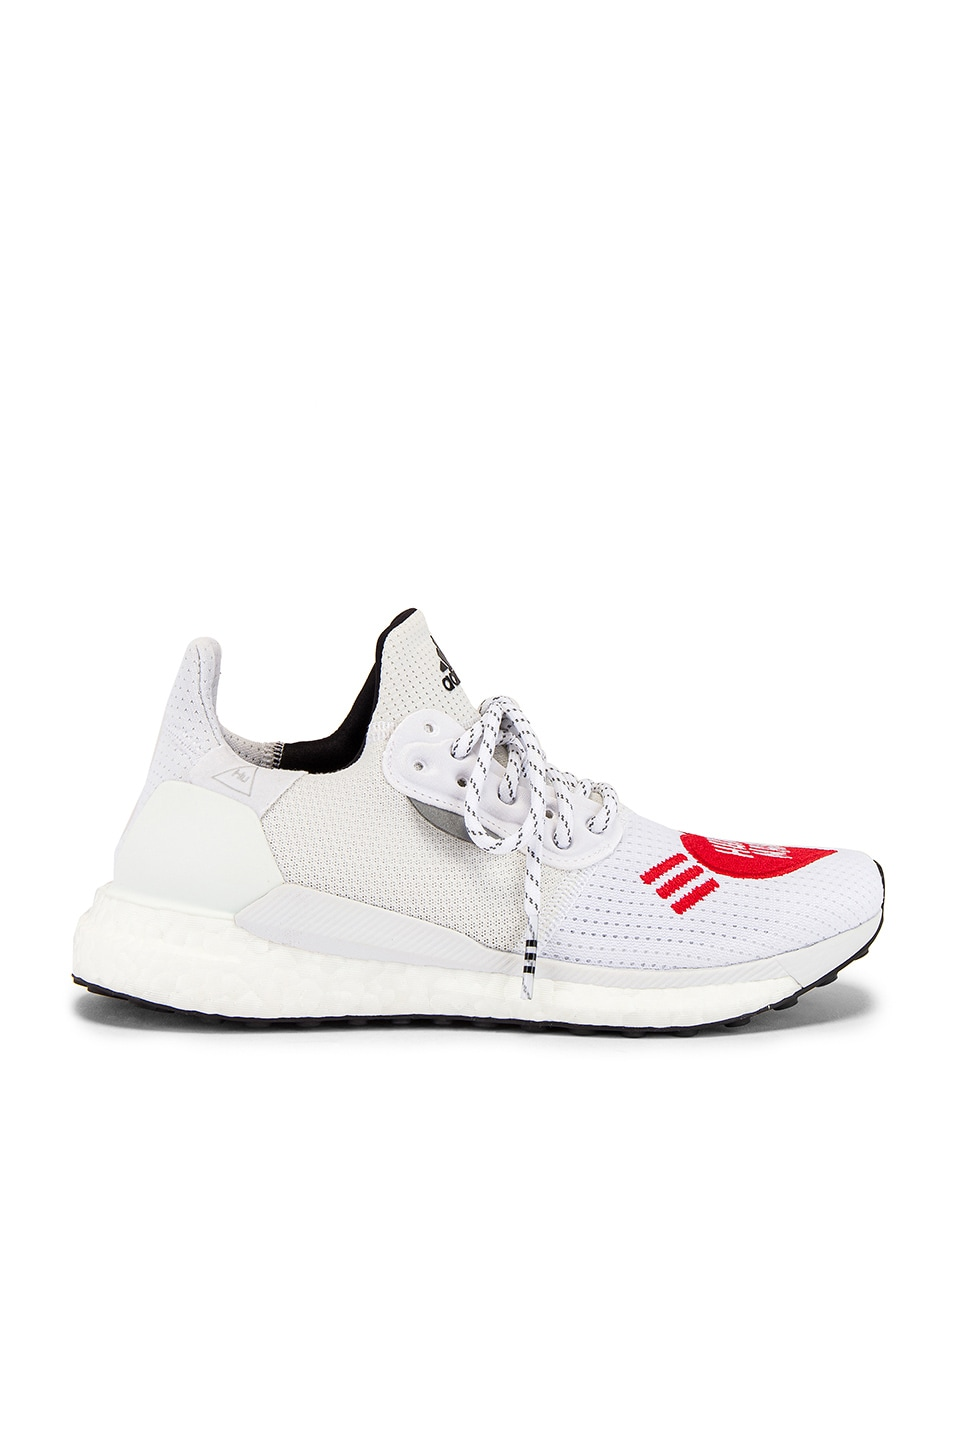 adidas x Pharrell Williams Solar Hu Human Made Sneaker in White & Scarlet